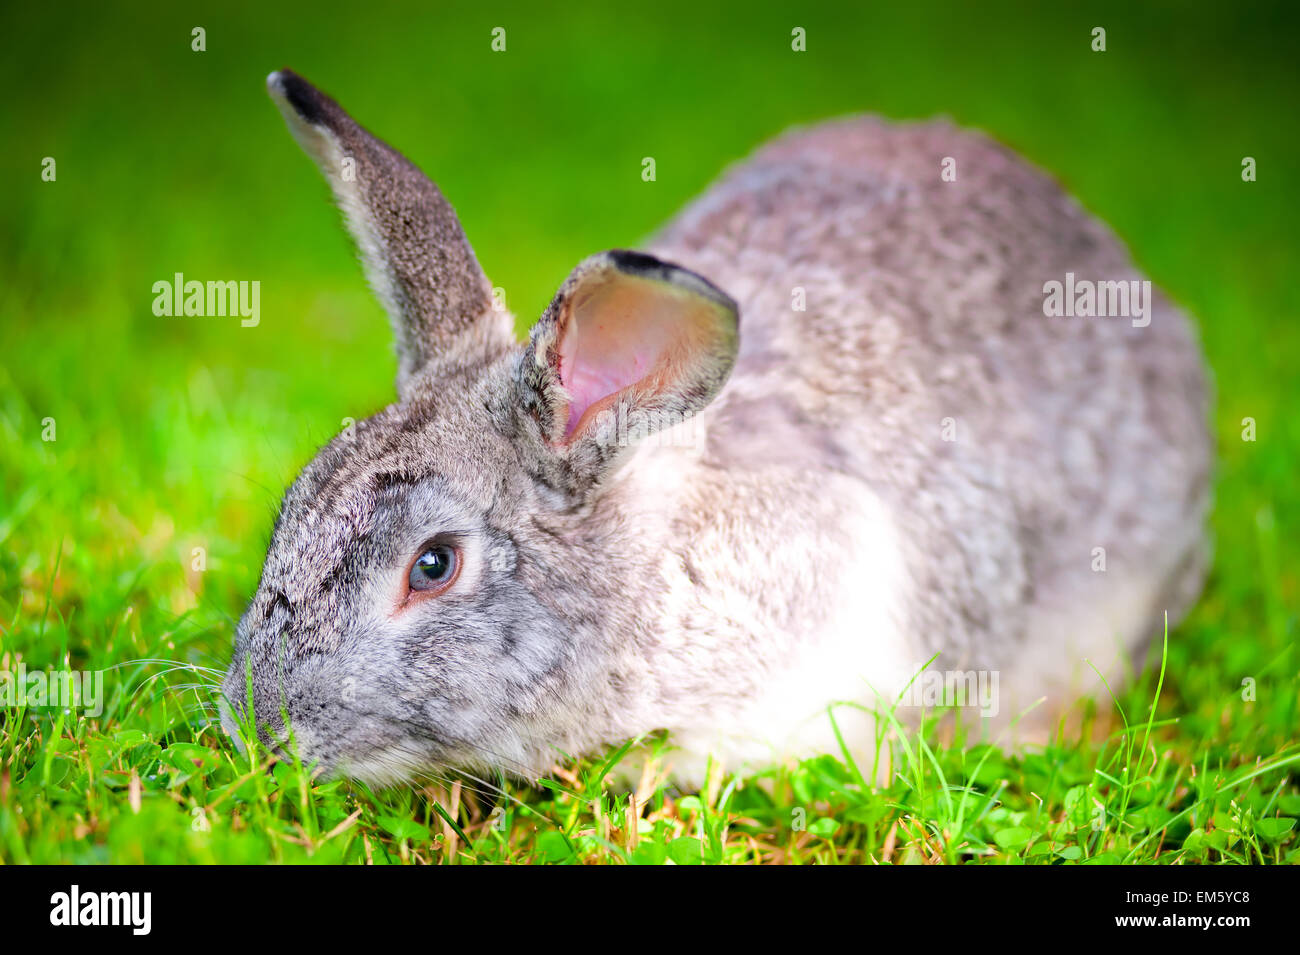 large pet rabbit eating green grass in the field - Stock Image